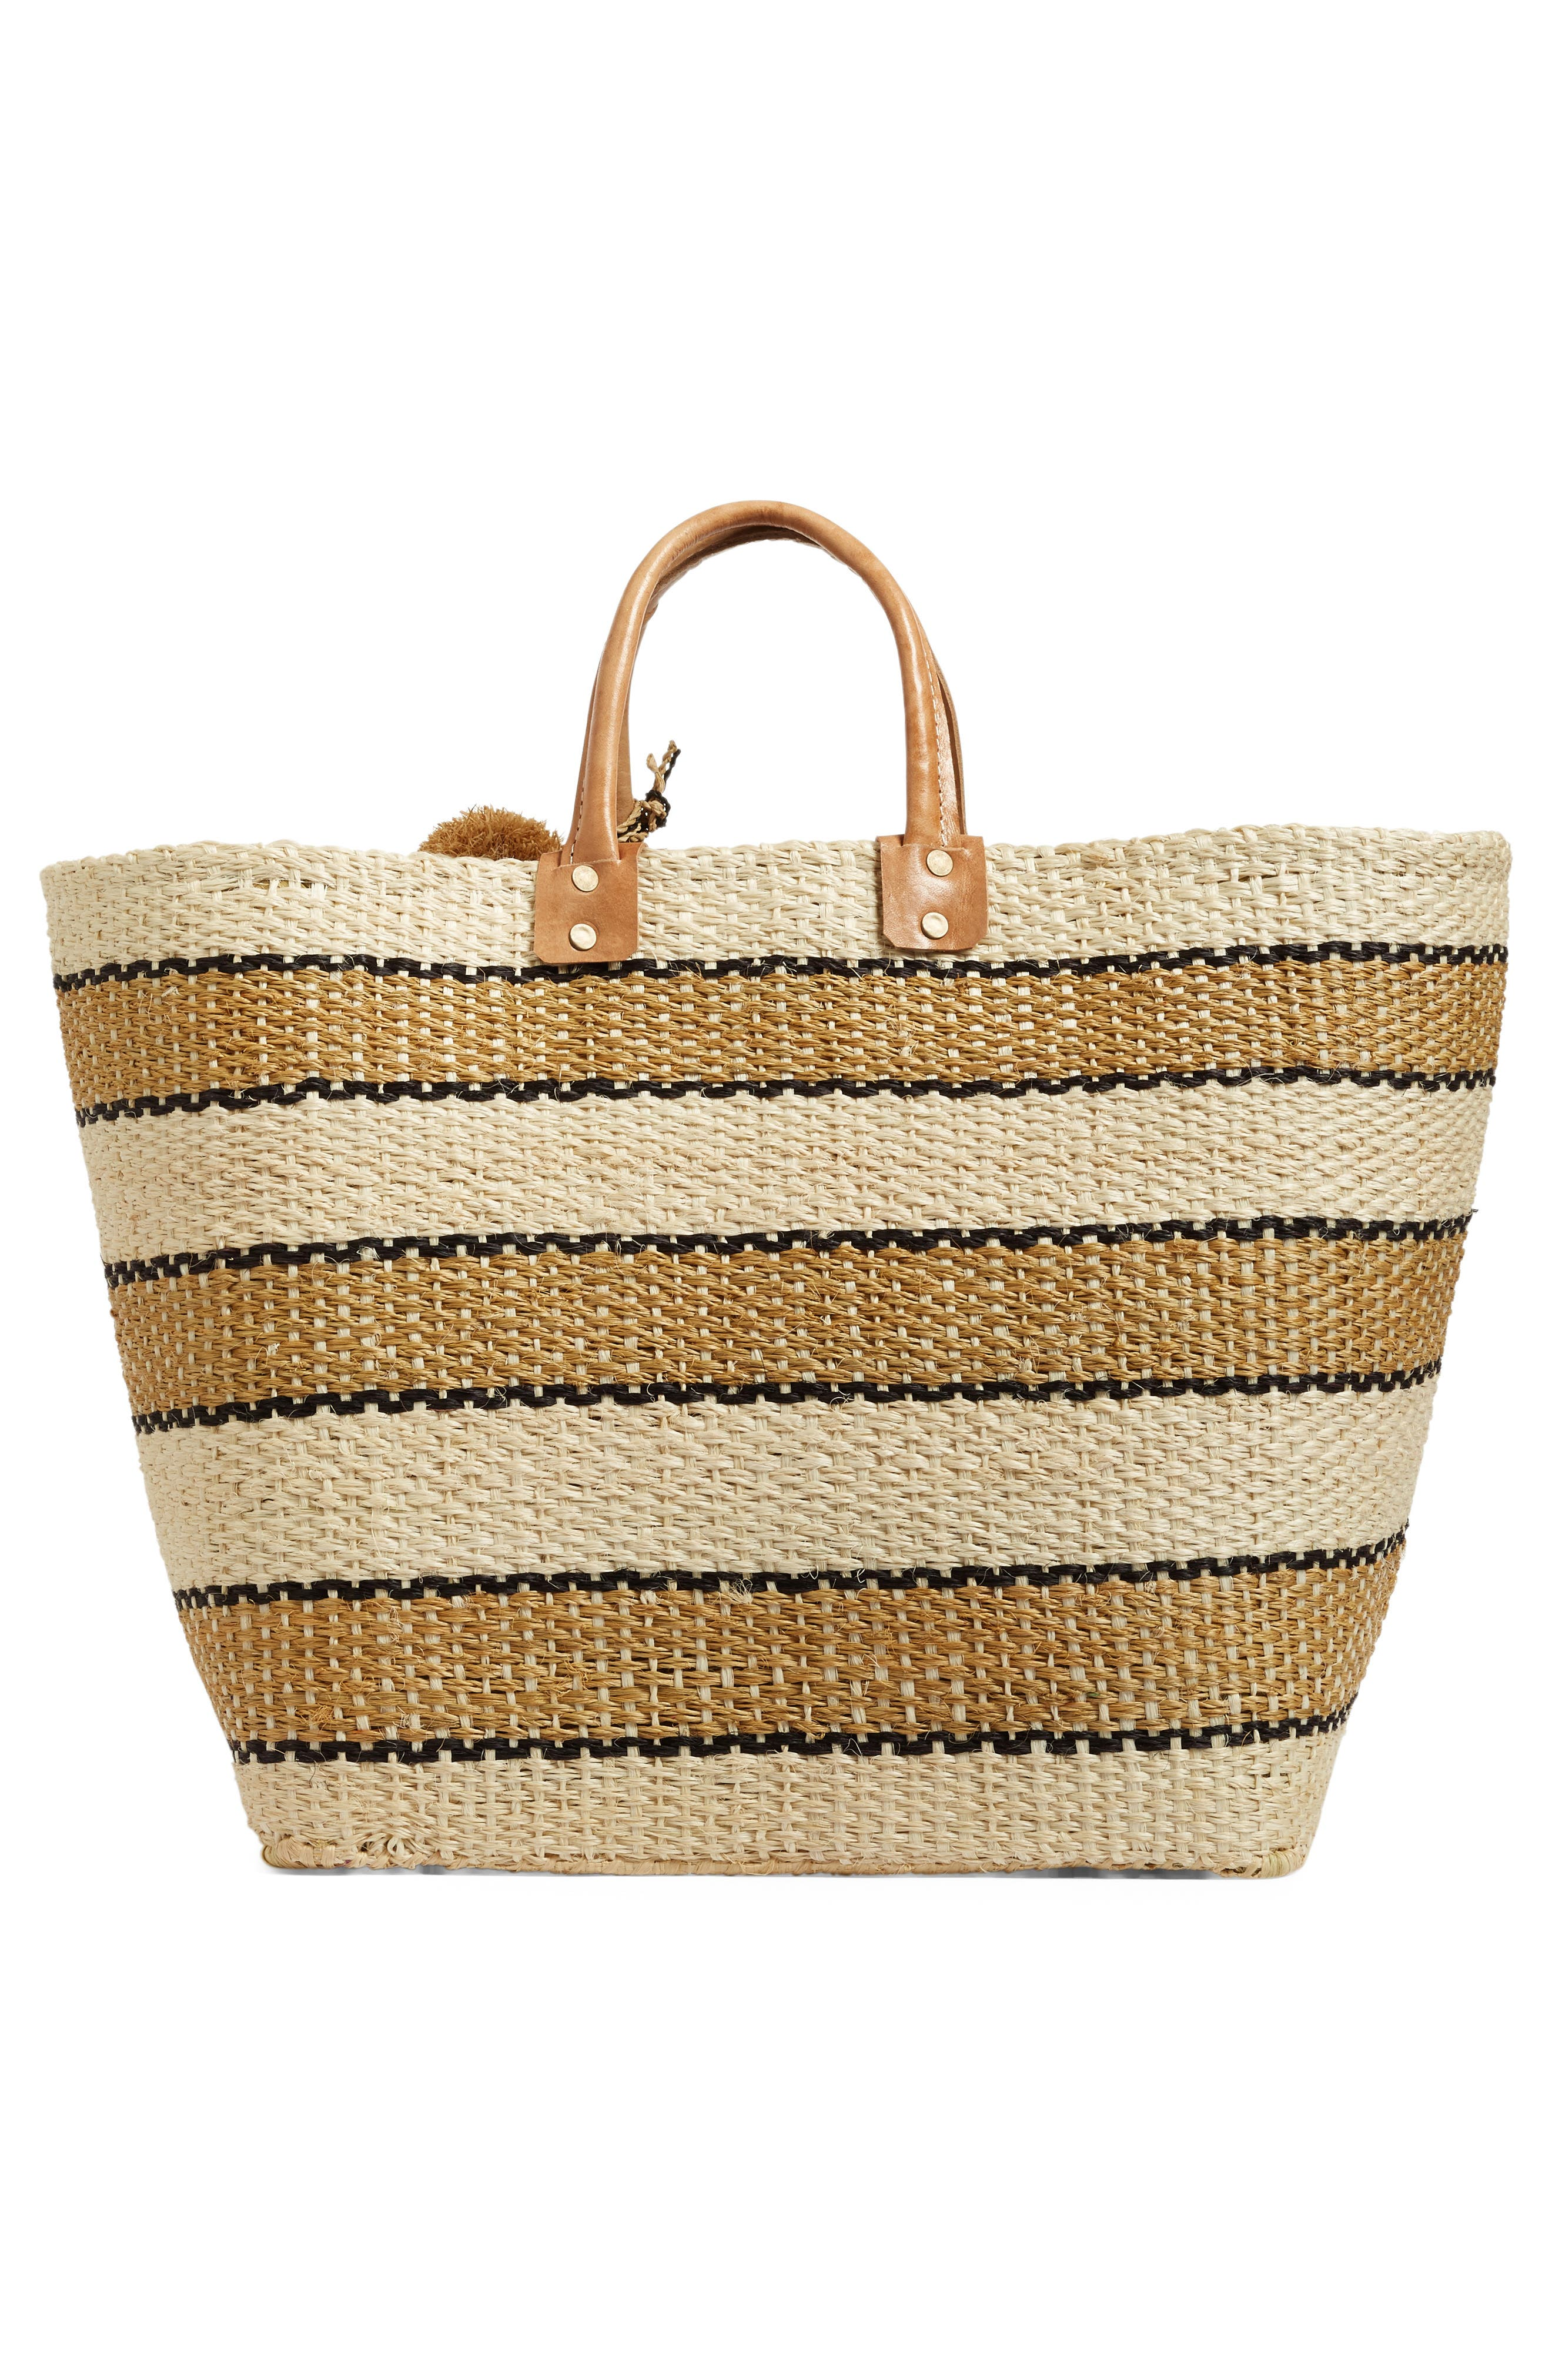 'Capri' Woven Tote with Pom Charms,                             Alternate thumbnail 3, color,                             200